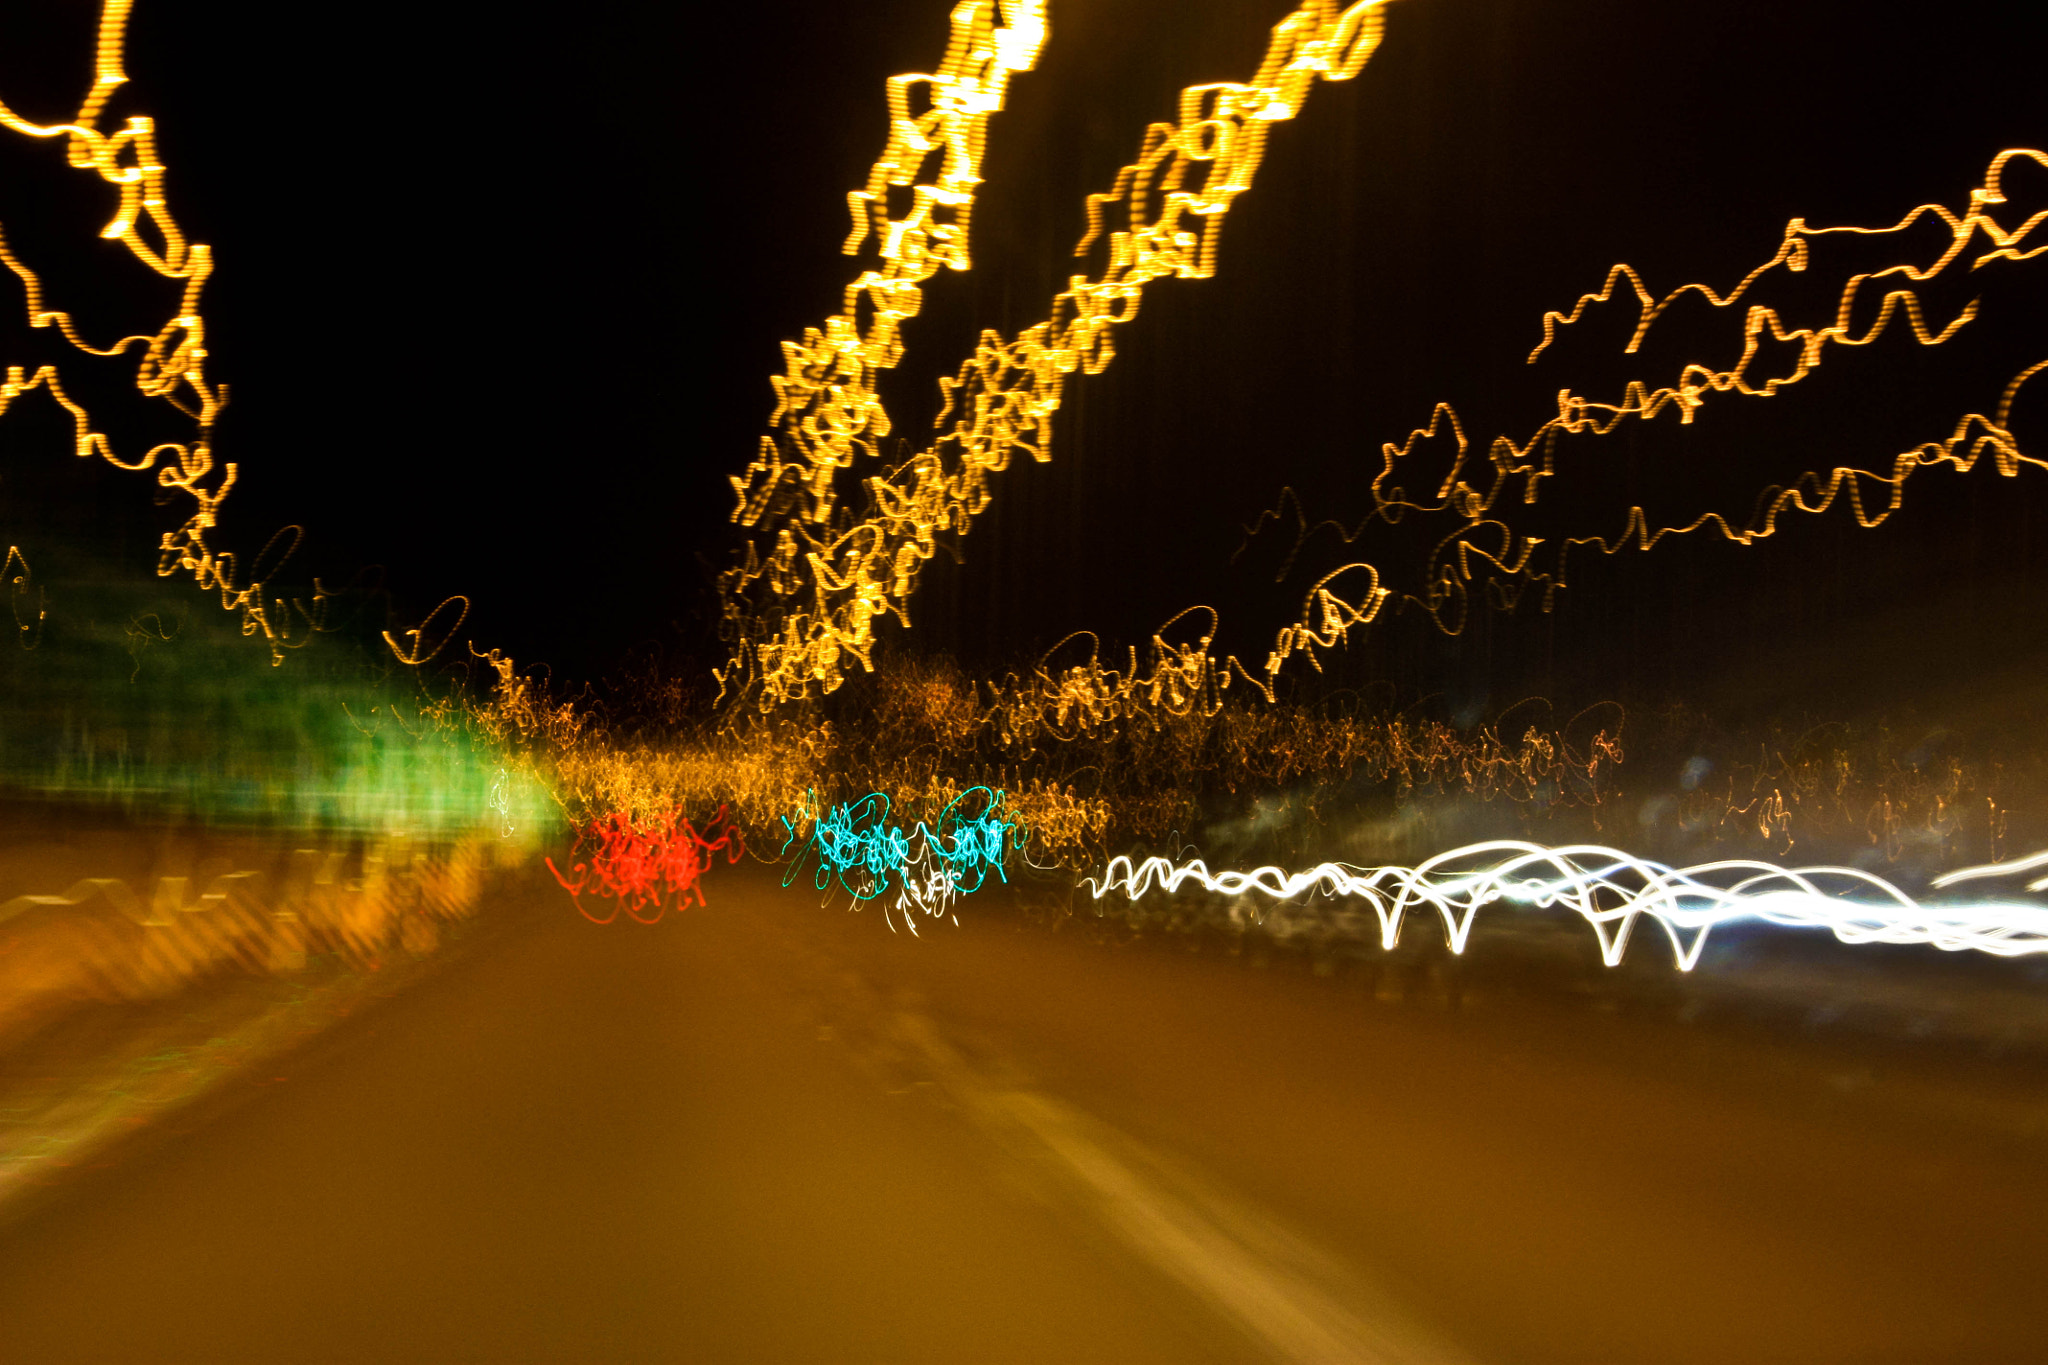 Photograph 8 Seconds of Road Bumps by Bikram Sthapit on 500px